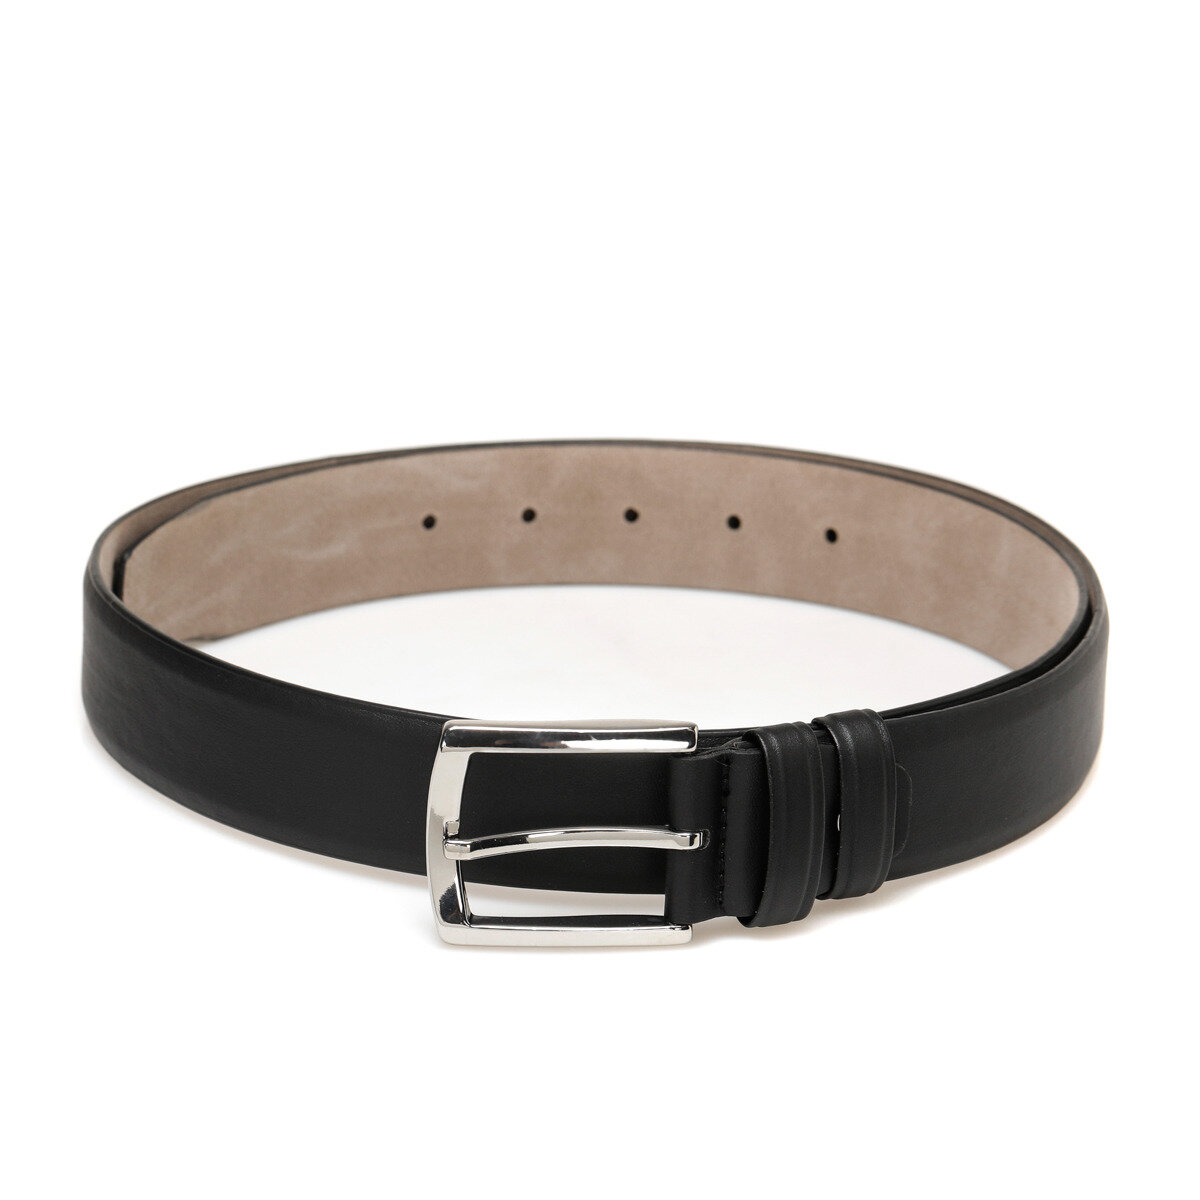 FLO 20M GK CO SEAMLESS Black Male Belt Garamond